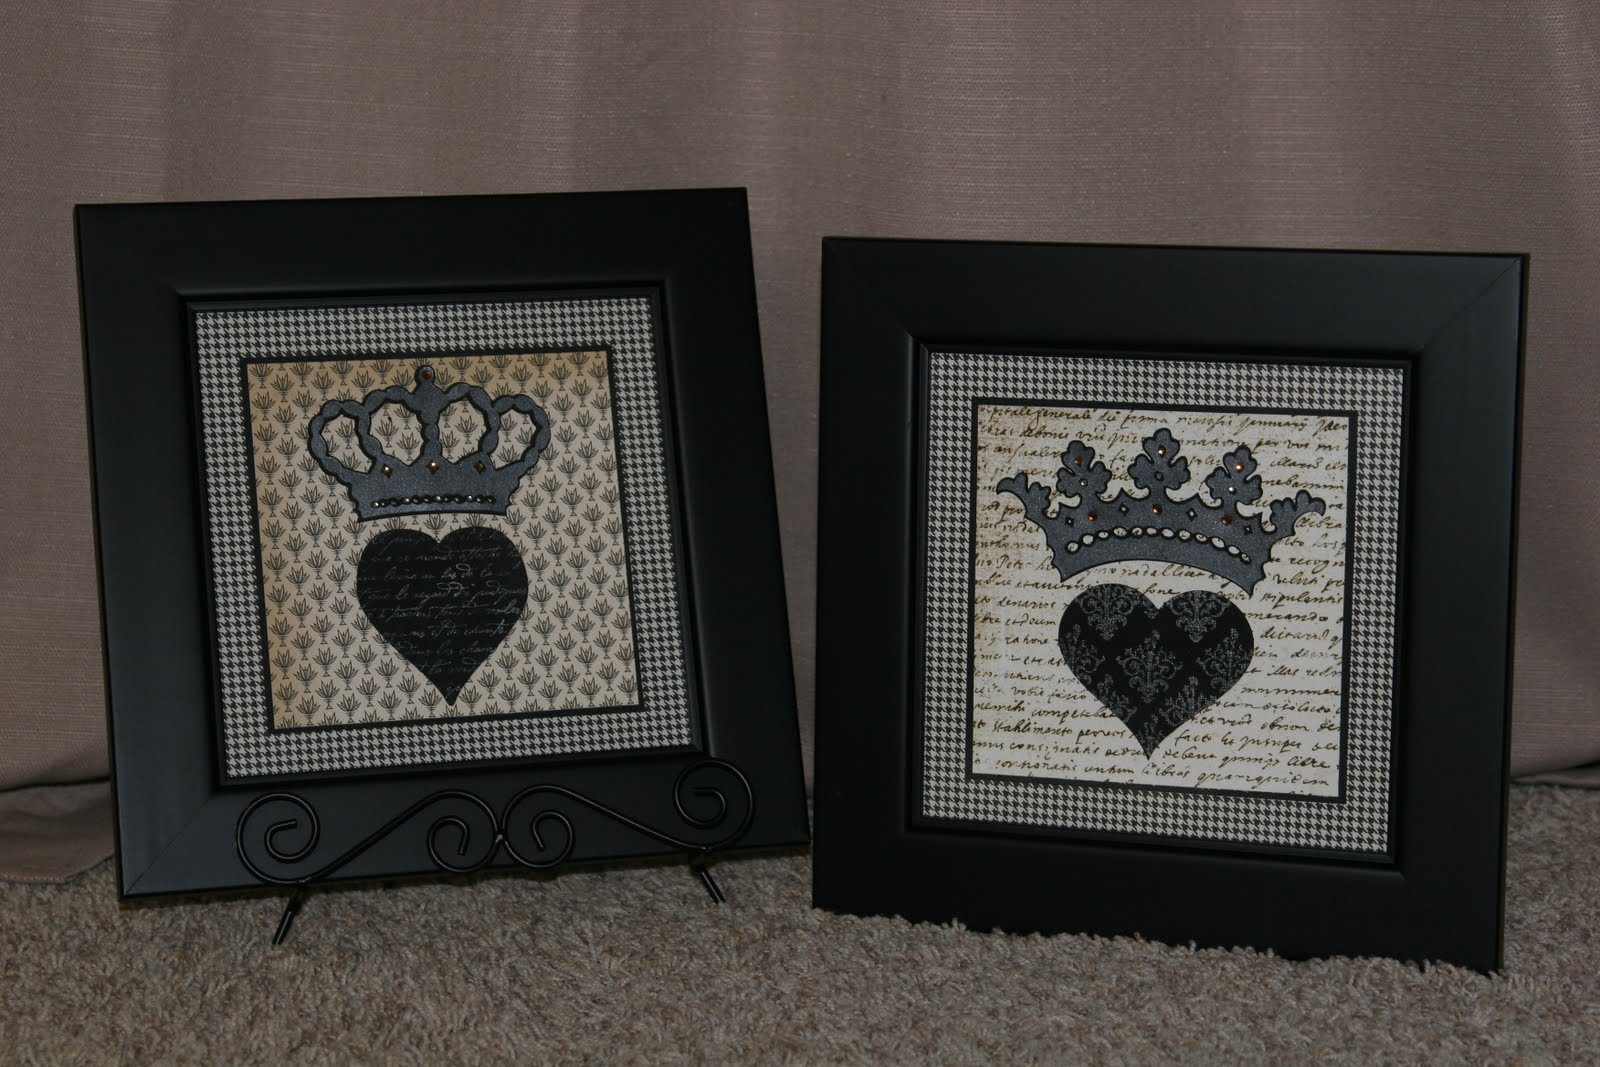 I Kind Of Have A King Queen Theme Going On My Daughter Saw Them And Thought It Would Make Cute Card For Her Friend She Bought Juicy Perfume